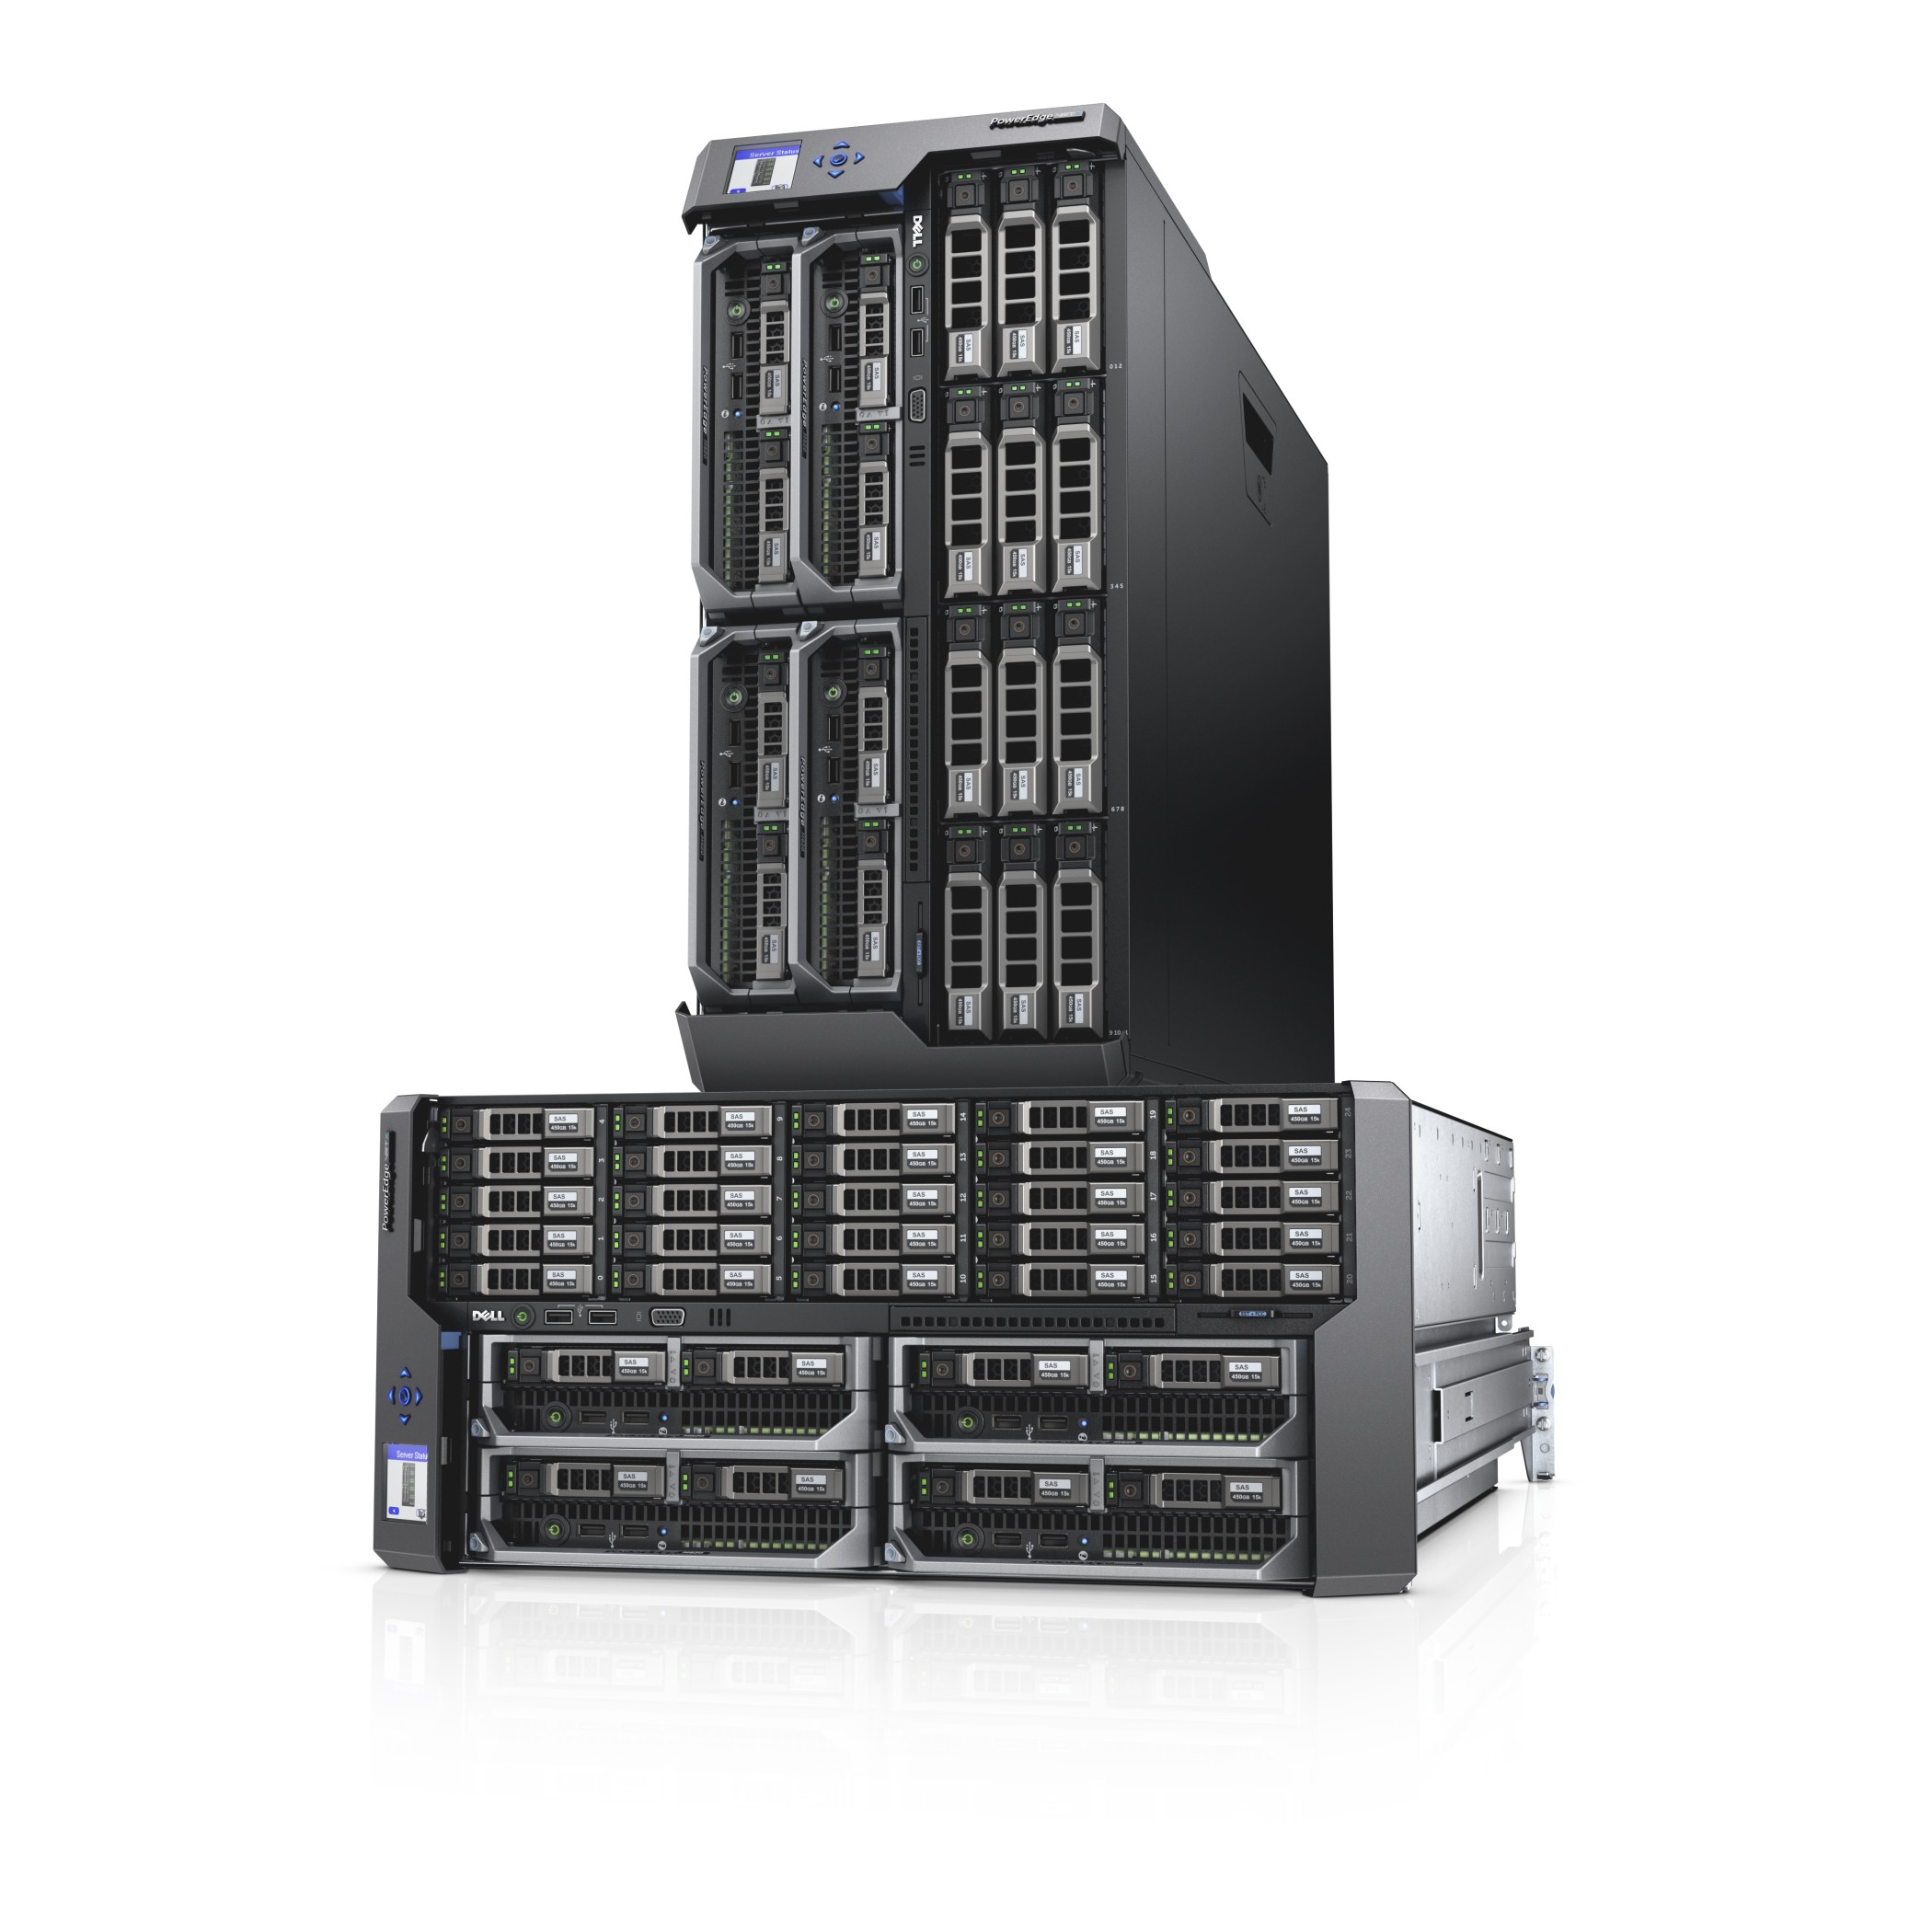 Dell Vrtx Manuals Auto Electrical Wiring Diagram Ruud Urgg12e61ckr Poweredge Tower Chassis